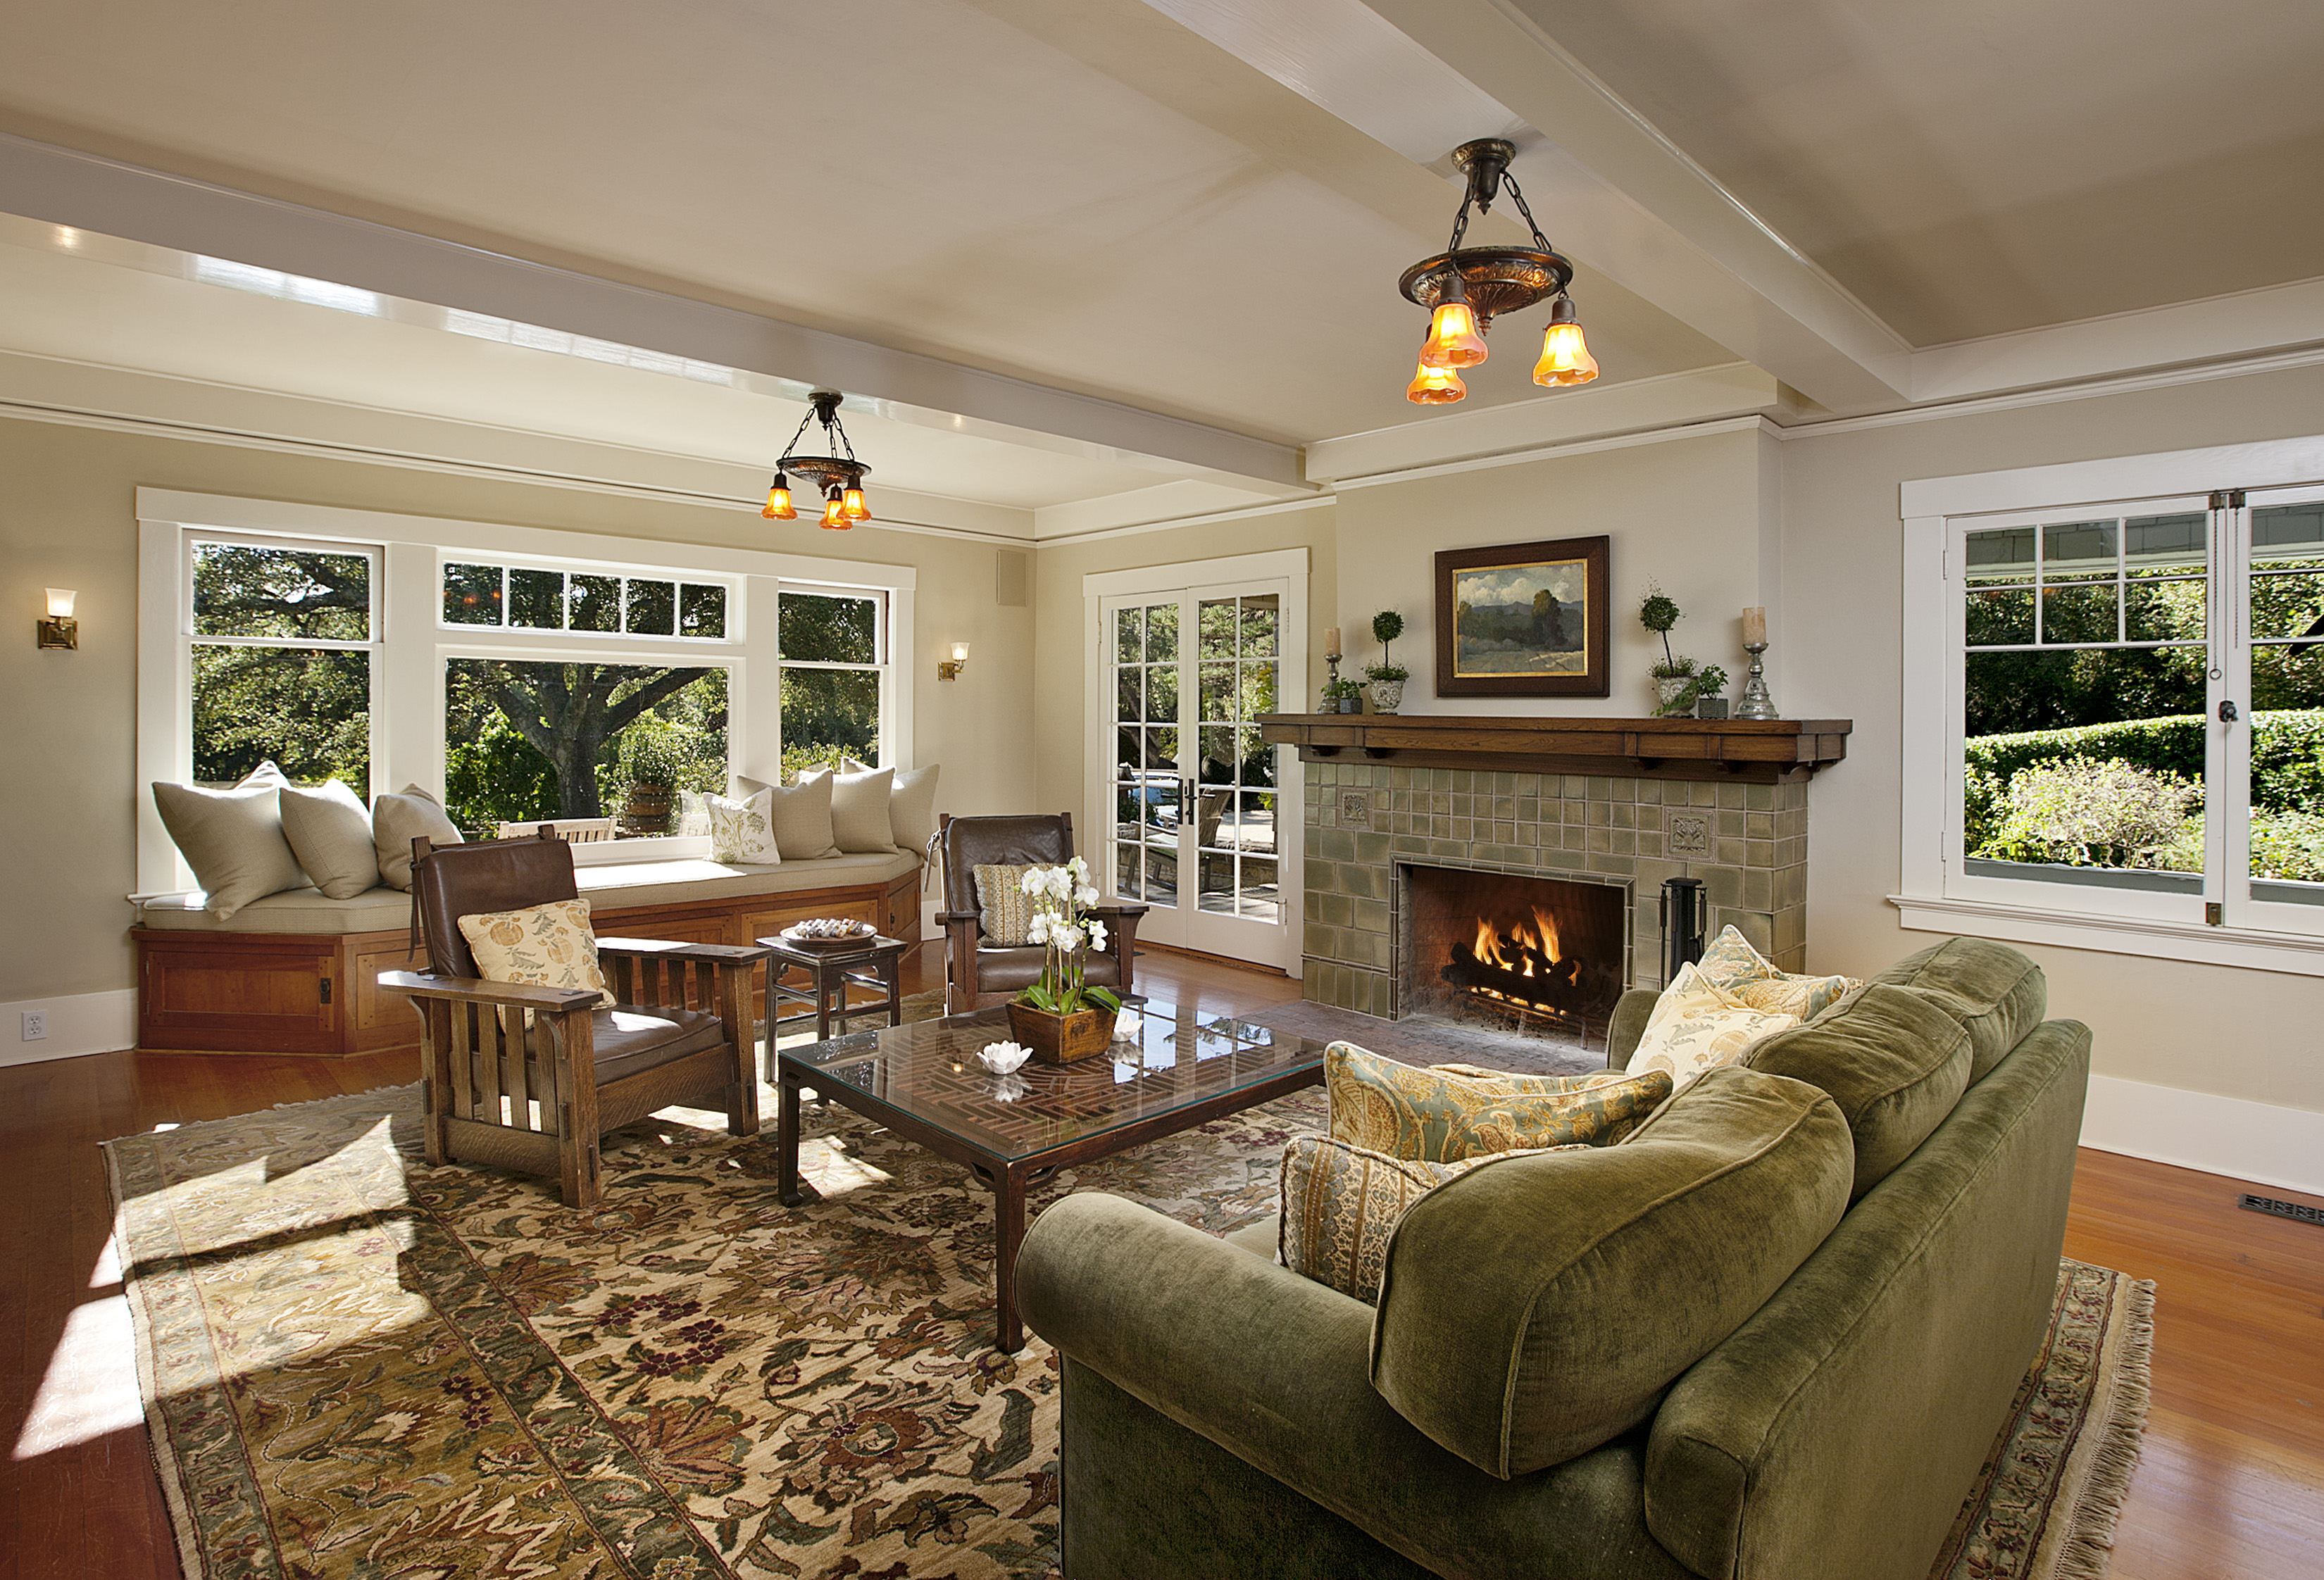 Popular home styles for 2012 montecito real estate for Home living decor